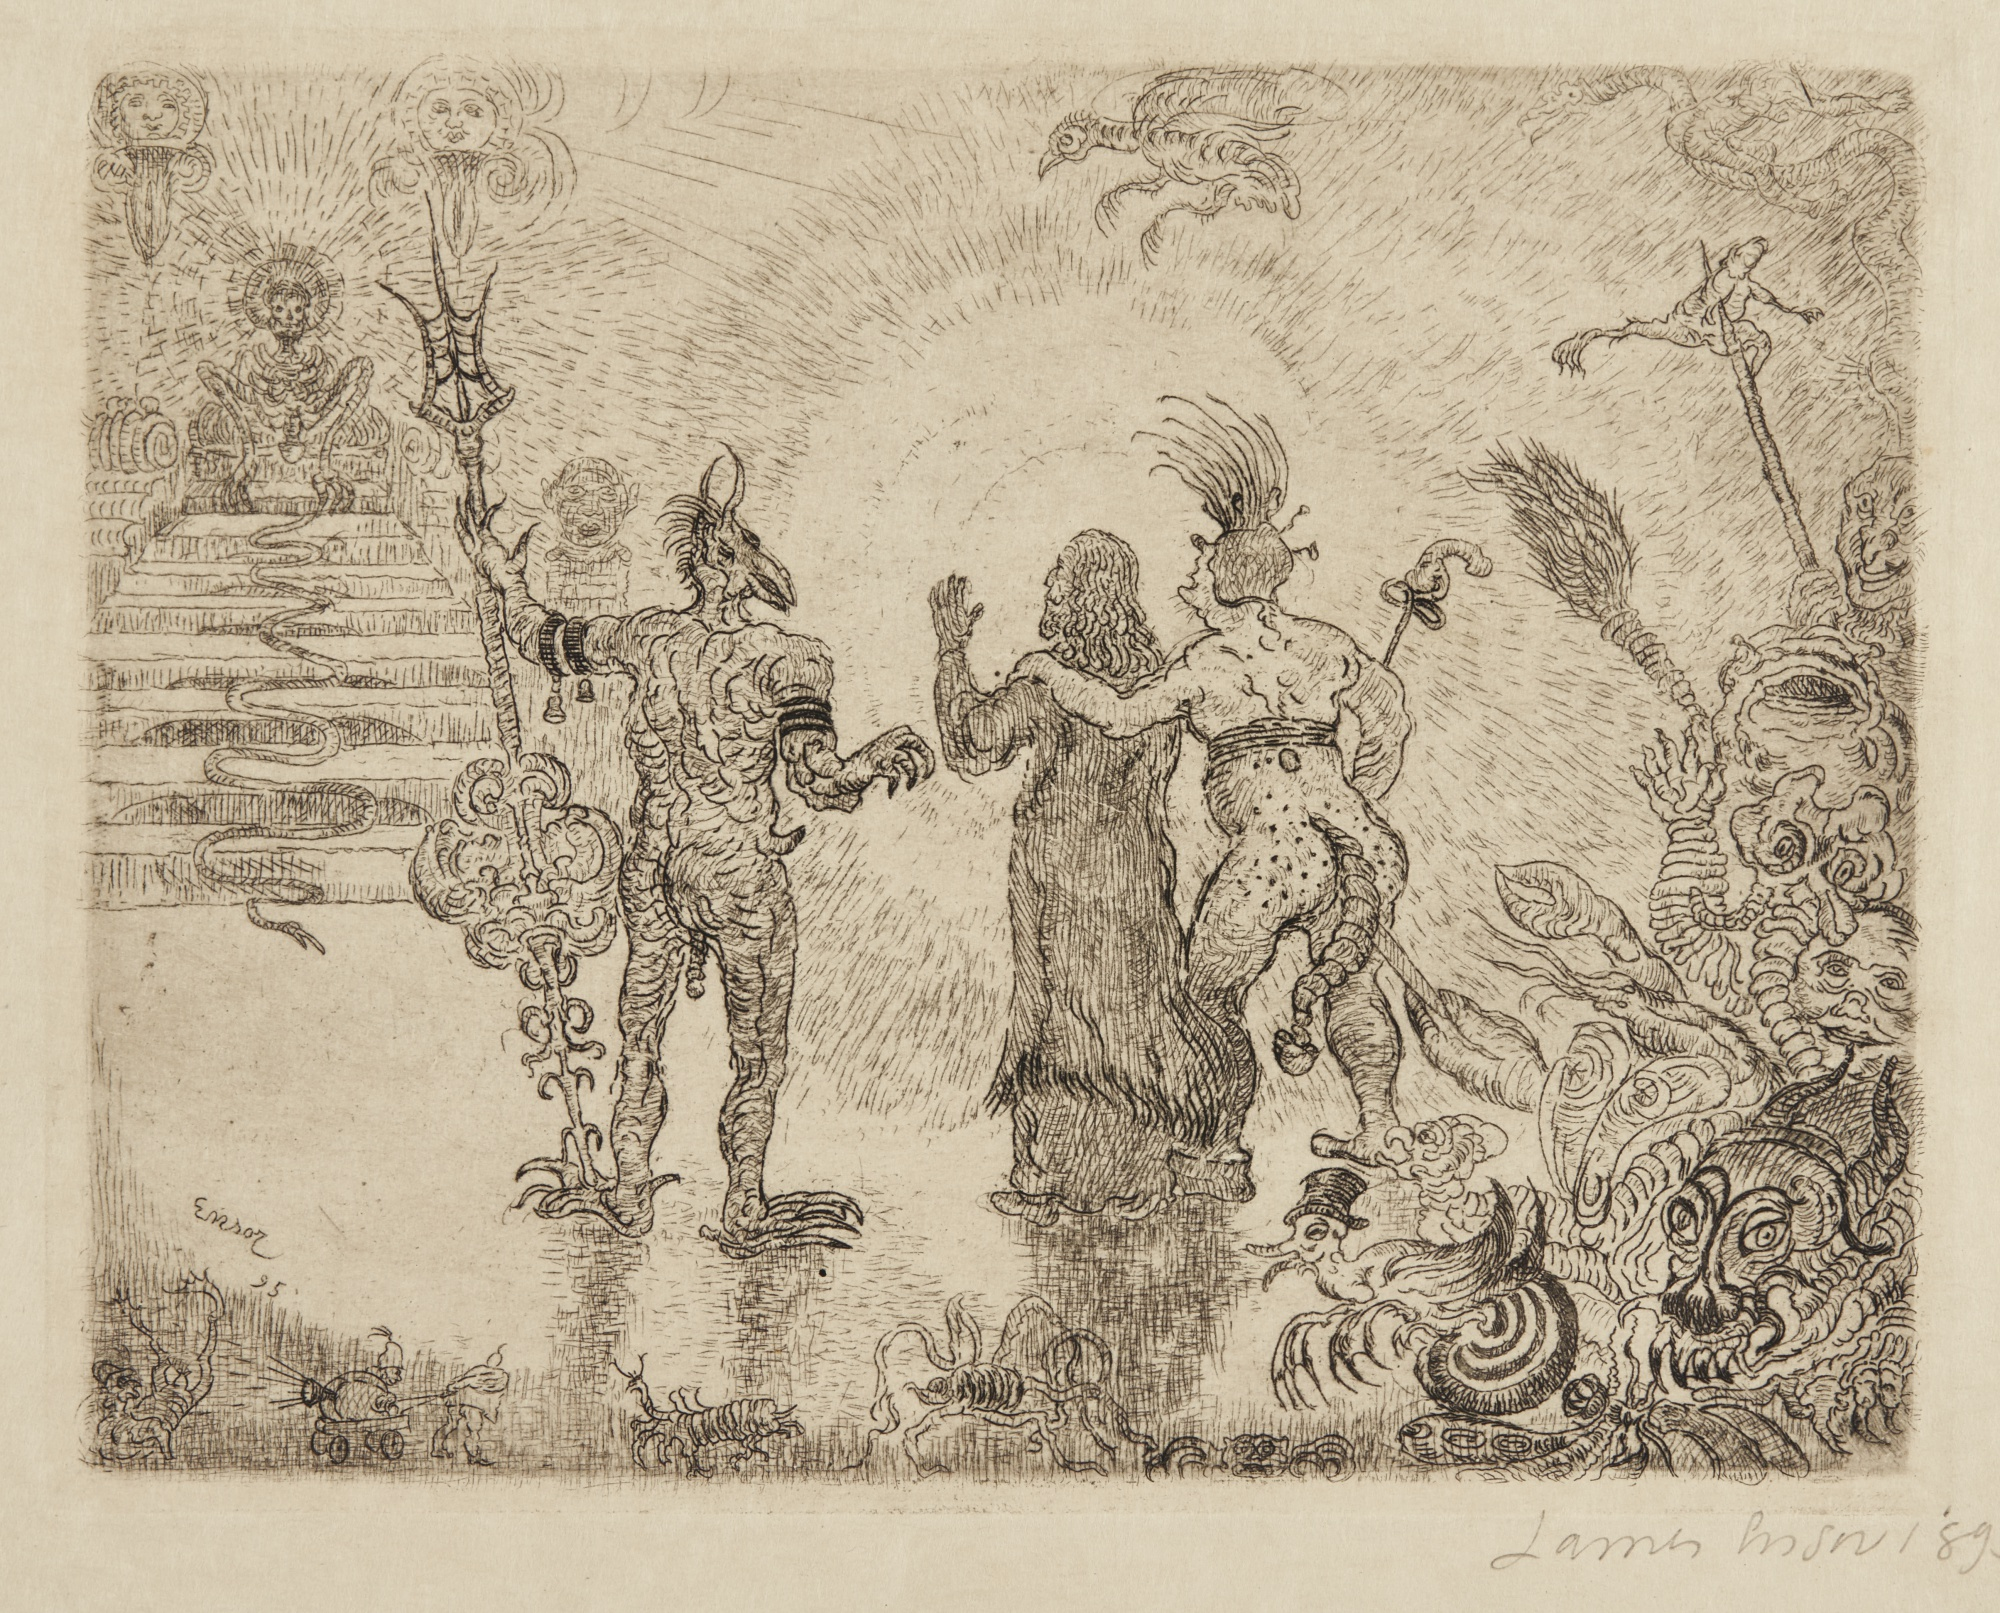 James Ensor-Les Diables Dzitts Et Hihanox Conduisant Le Christ Aux Enfers (D. 88; T. E. 90)-1895